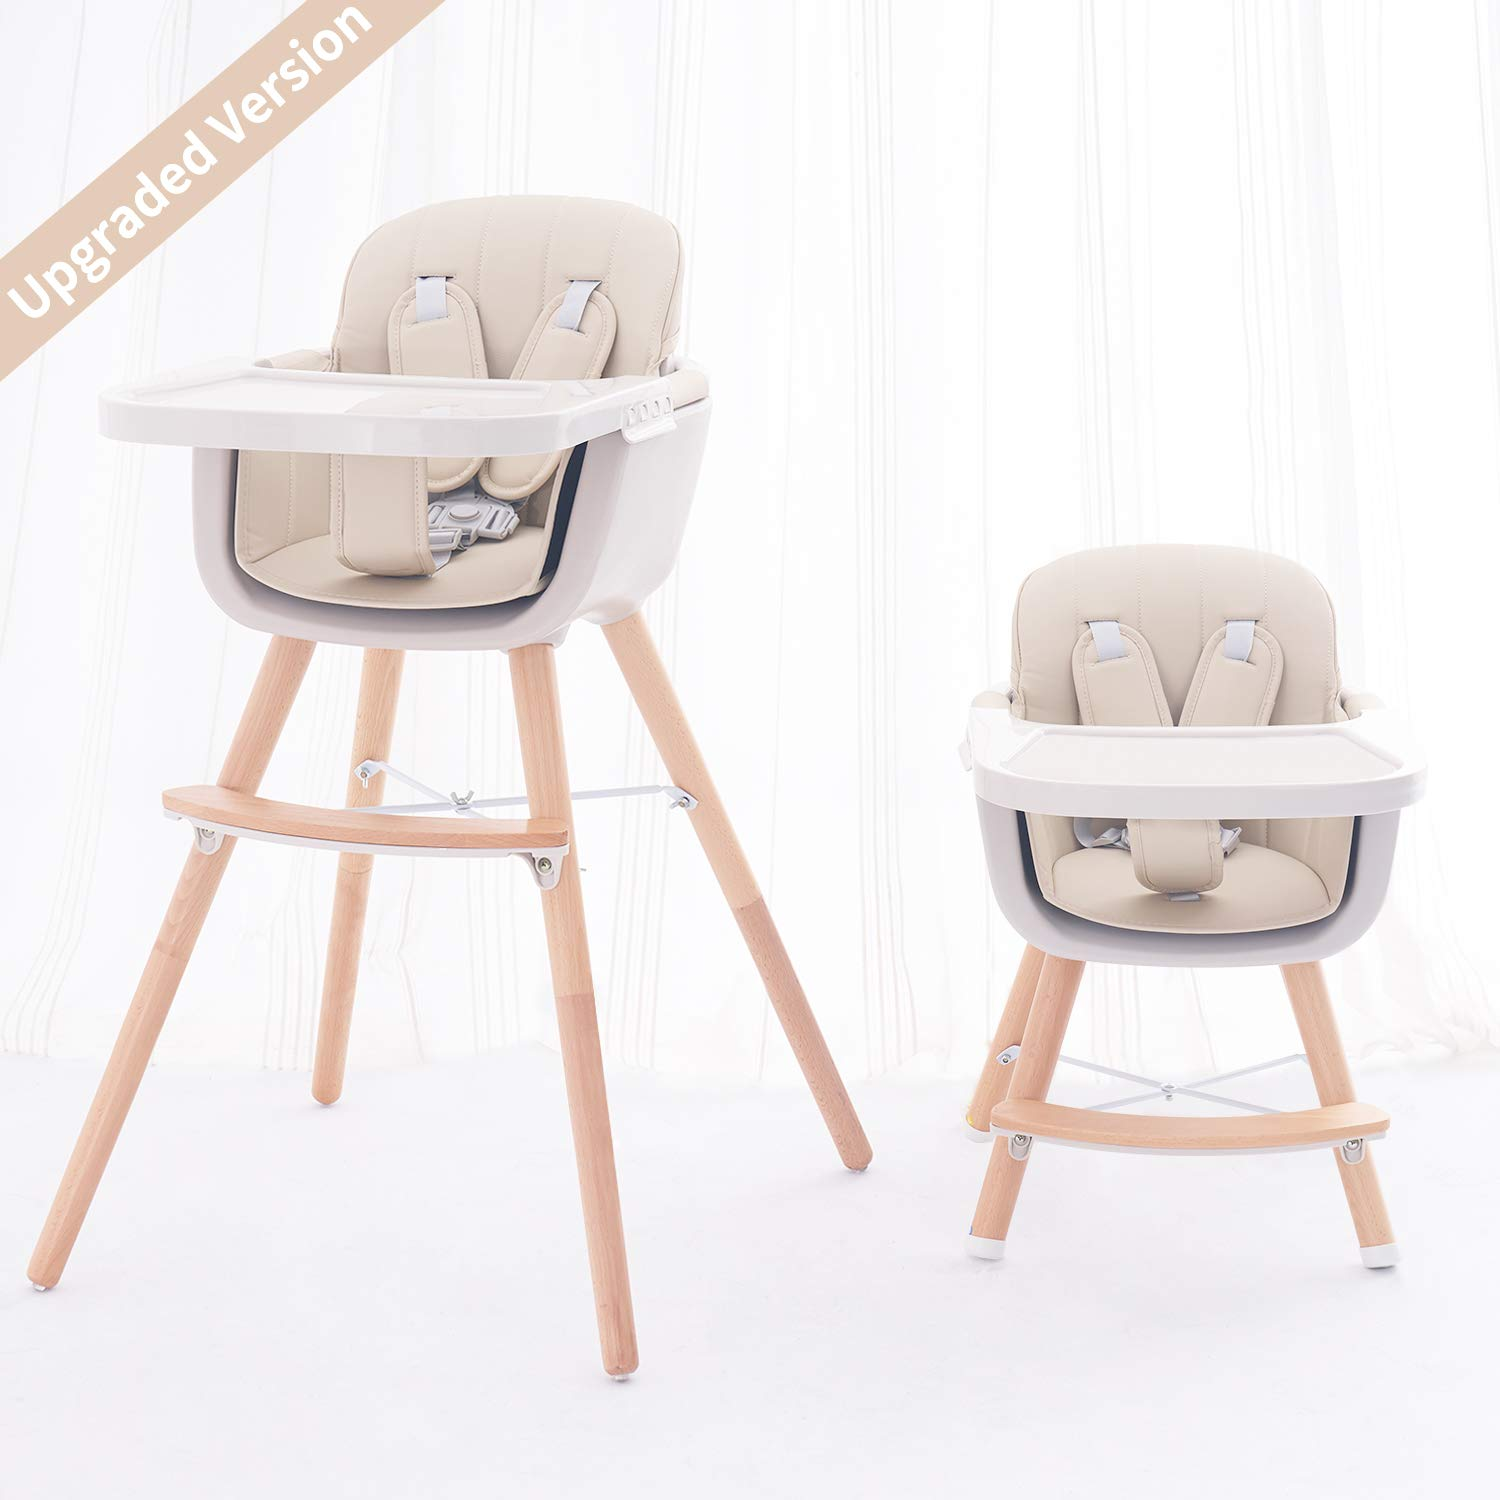 FUNNY SUPPLY 3-in-1 Convertible Wooden High Chair with Removable Tray and Adjustable Legs and Cushion - Cream Color by FUNNY SUPPLY